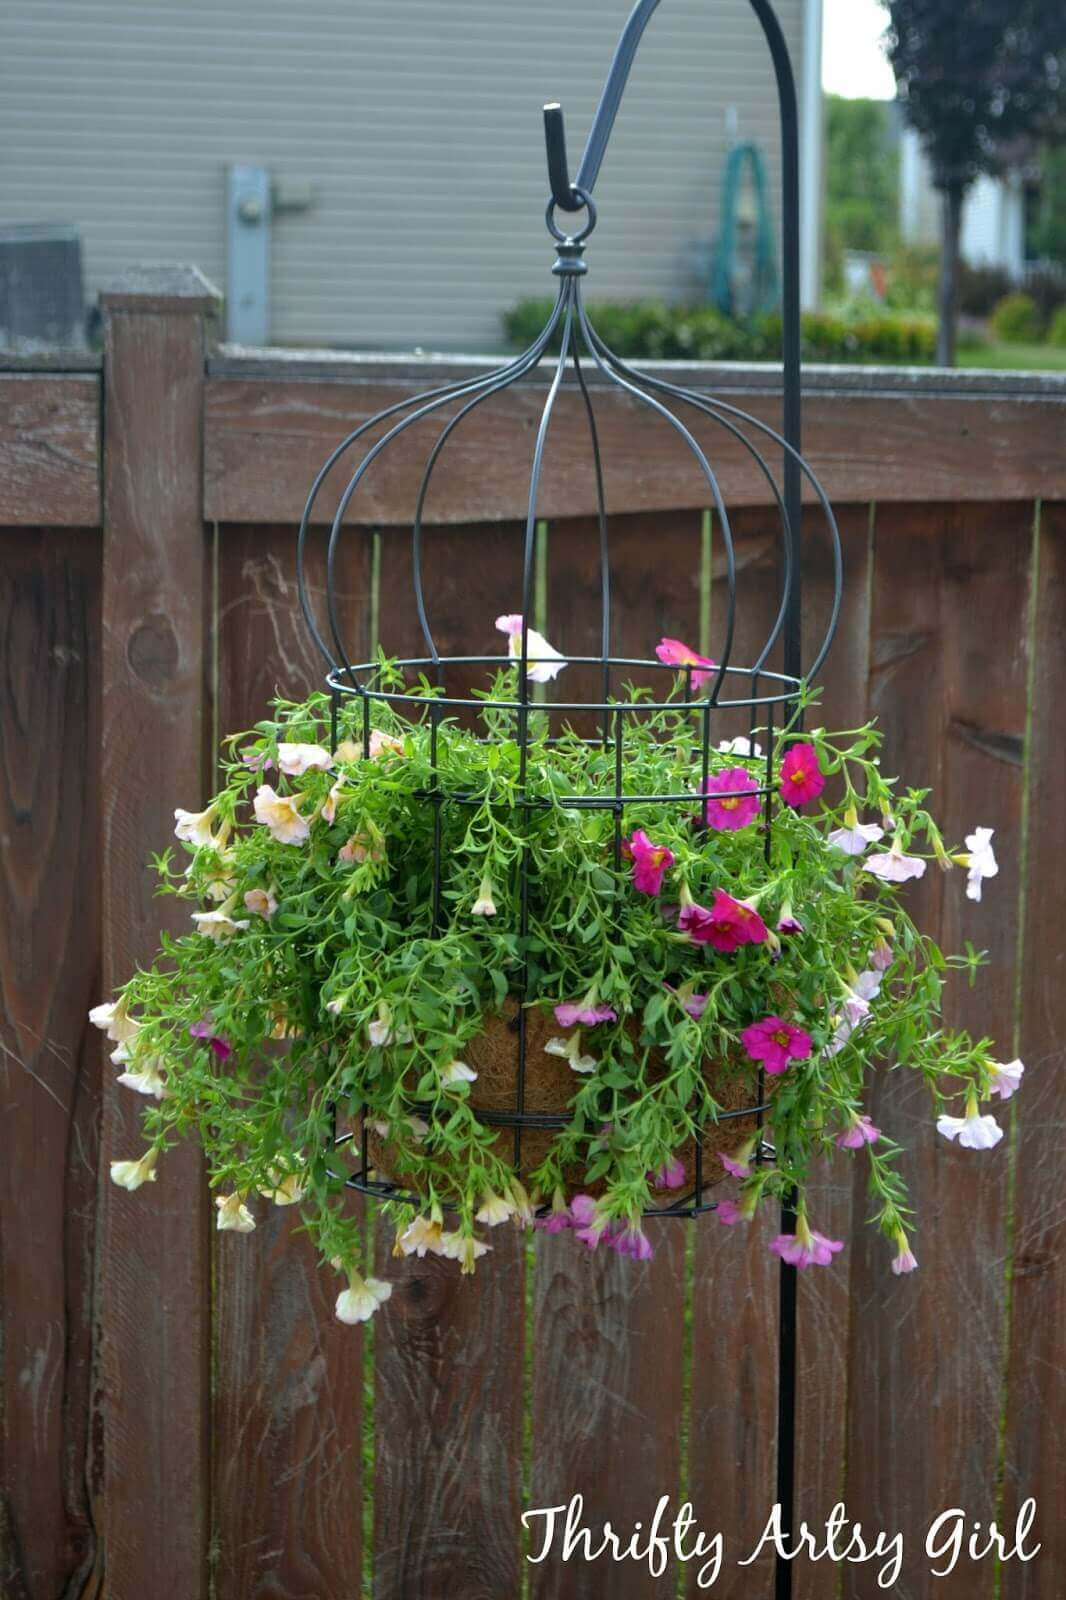 45 Best Outdoor Hanging Planter Ideas and Designs for 2017 on Plant Hanging Ideas  id=21923